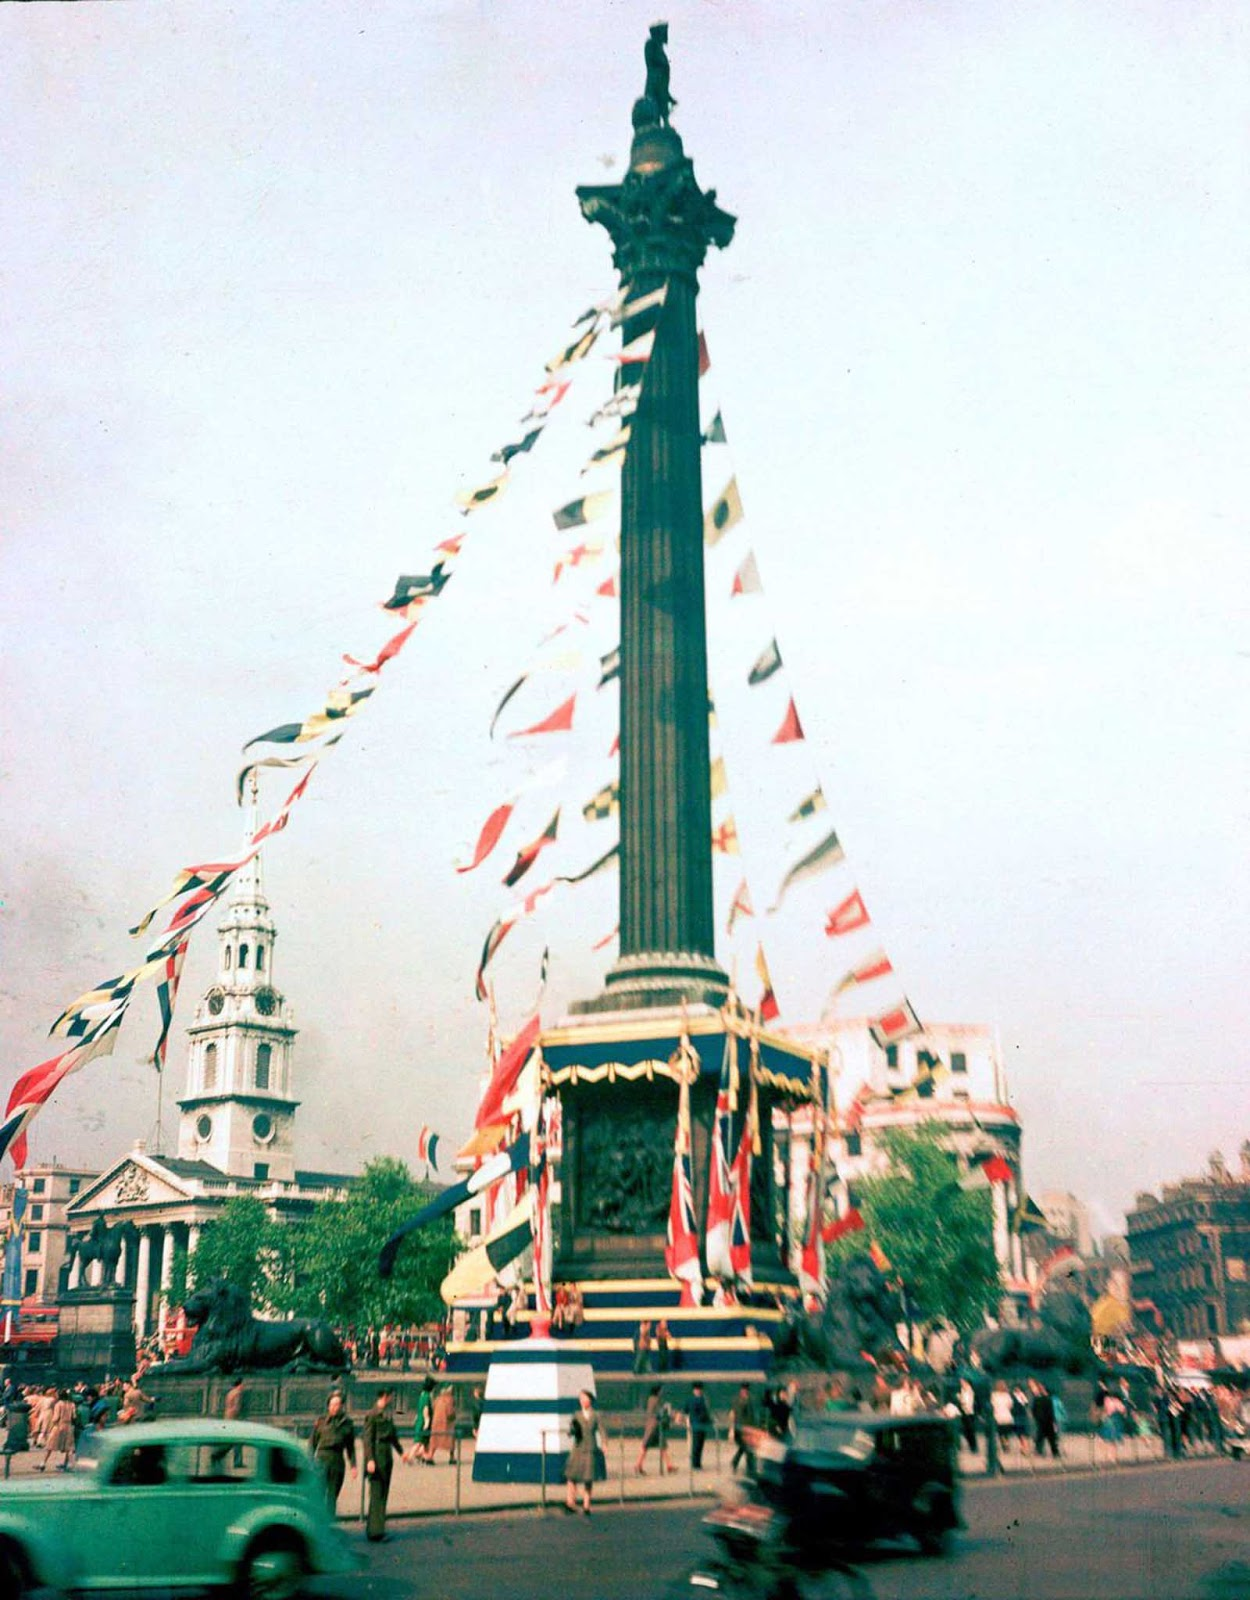 Nelson's Column festooned with flags to celebrate VE Day. Sept. 3, 1945.